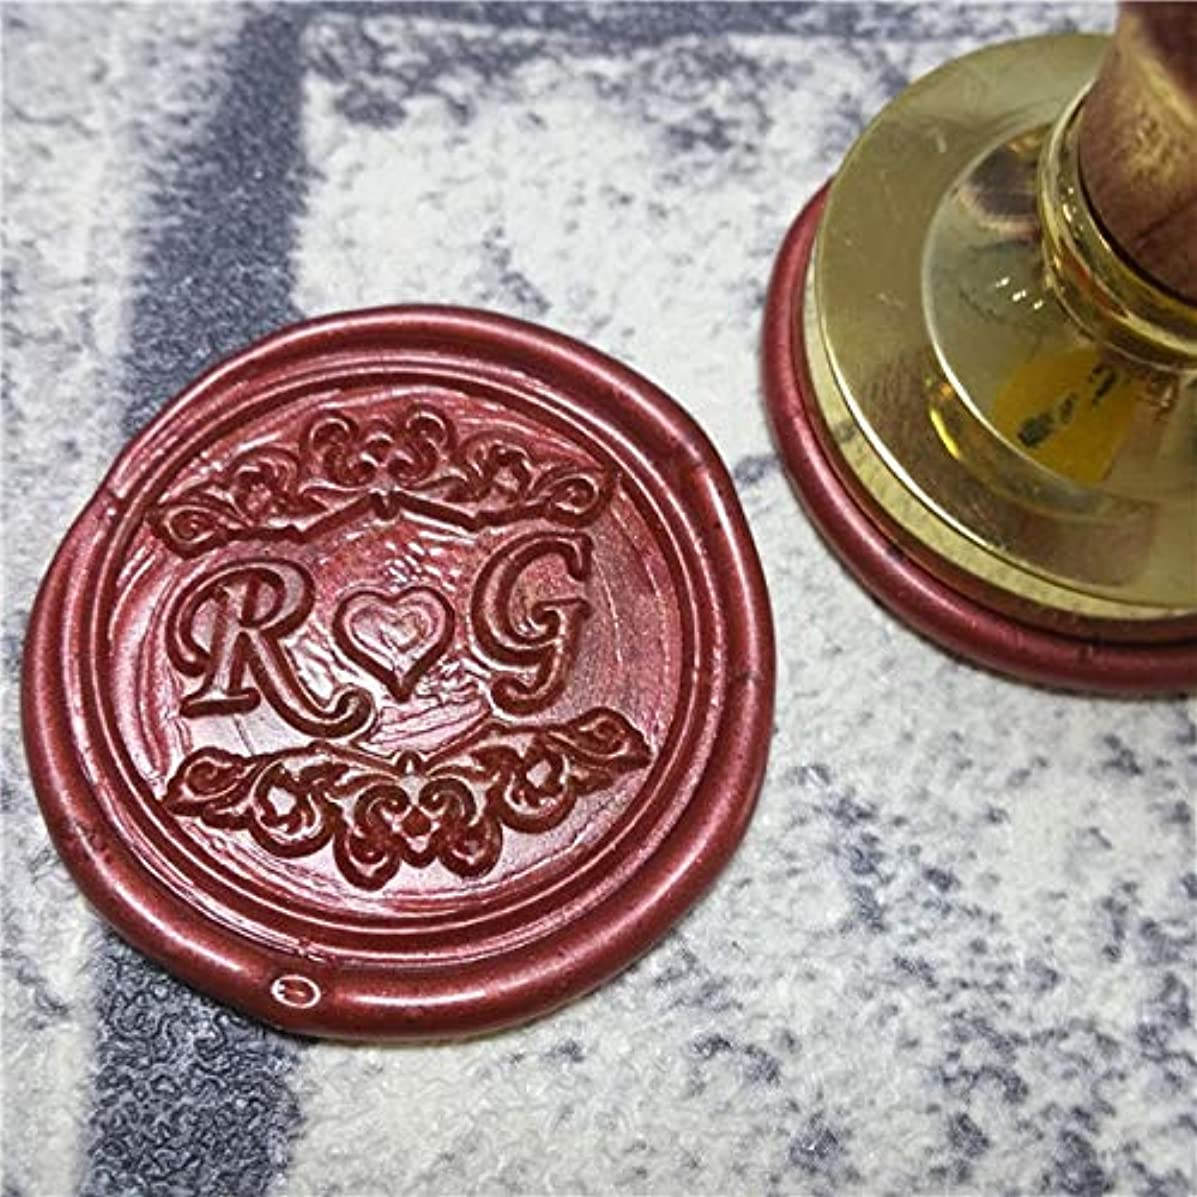 DIY Customize Double Name 2 Initials Personalized Letter Stamp/Sealing Wax/Wedding Wax Seal Stamp Custom Invitations Envelop